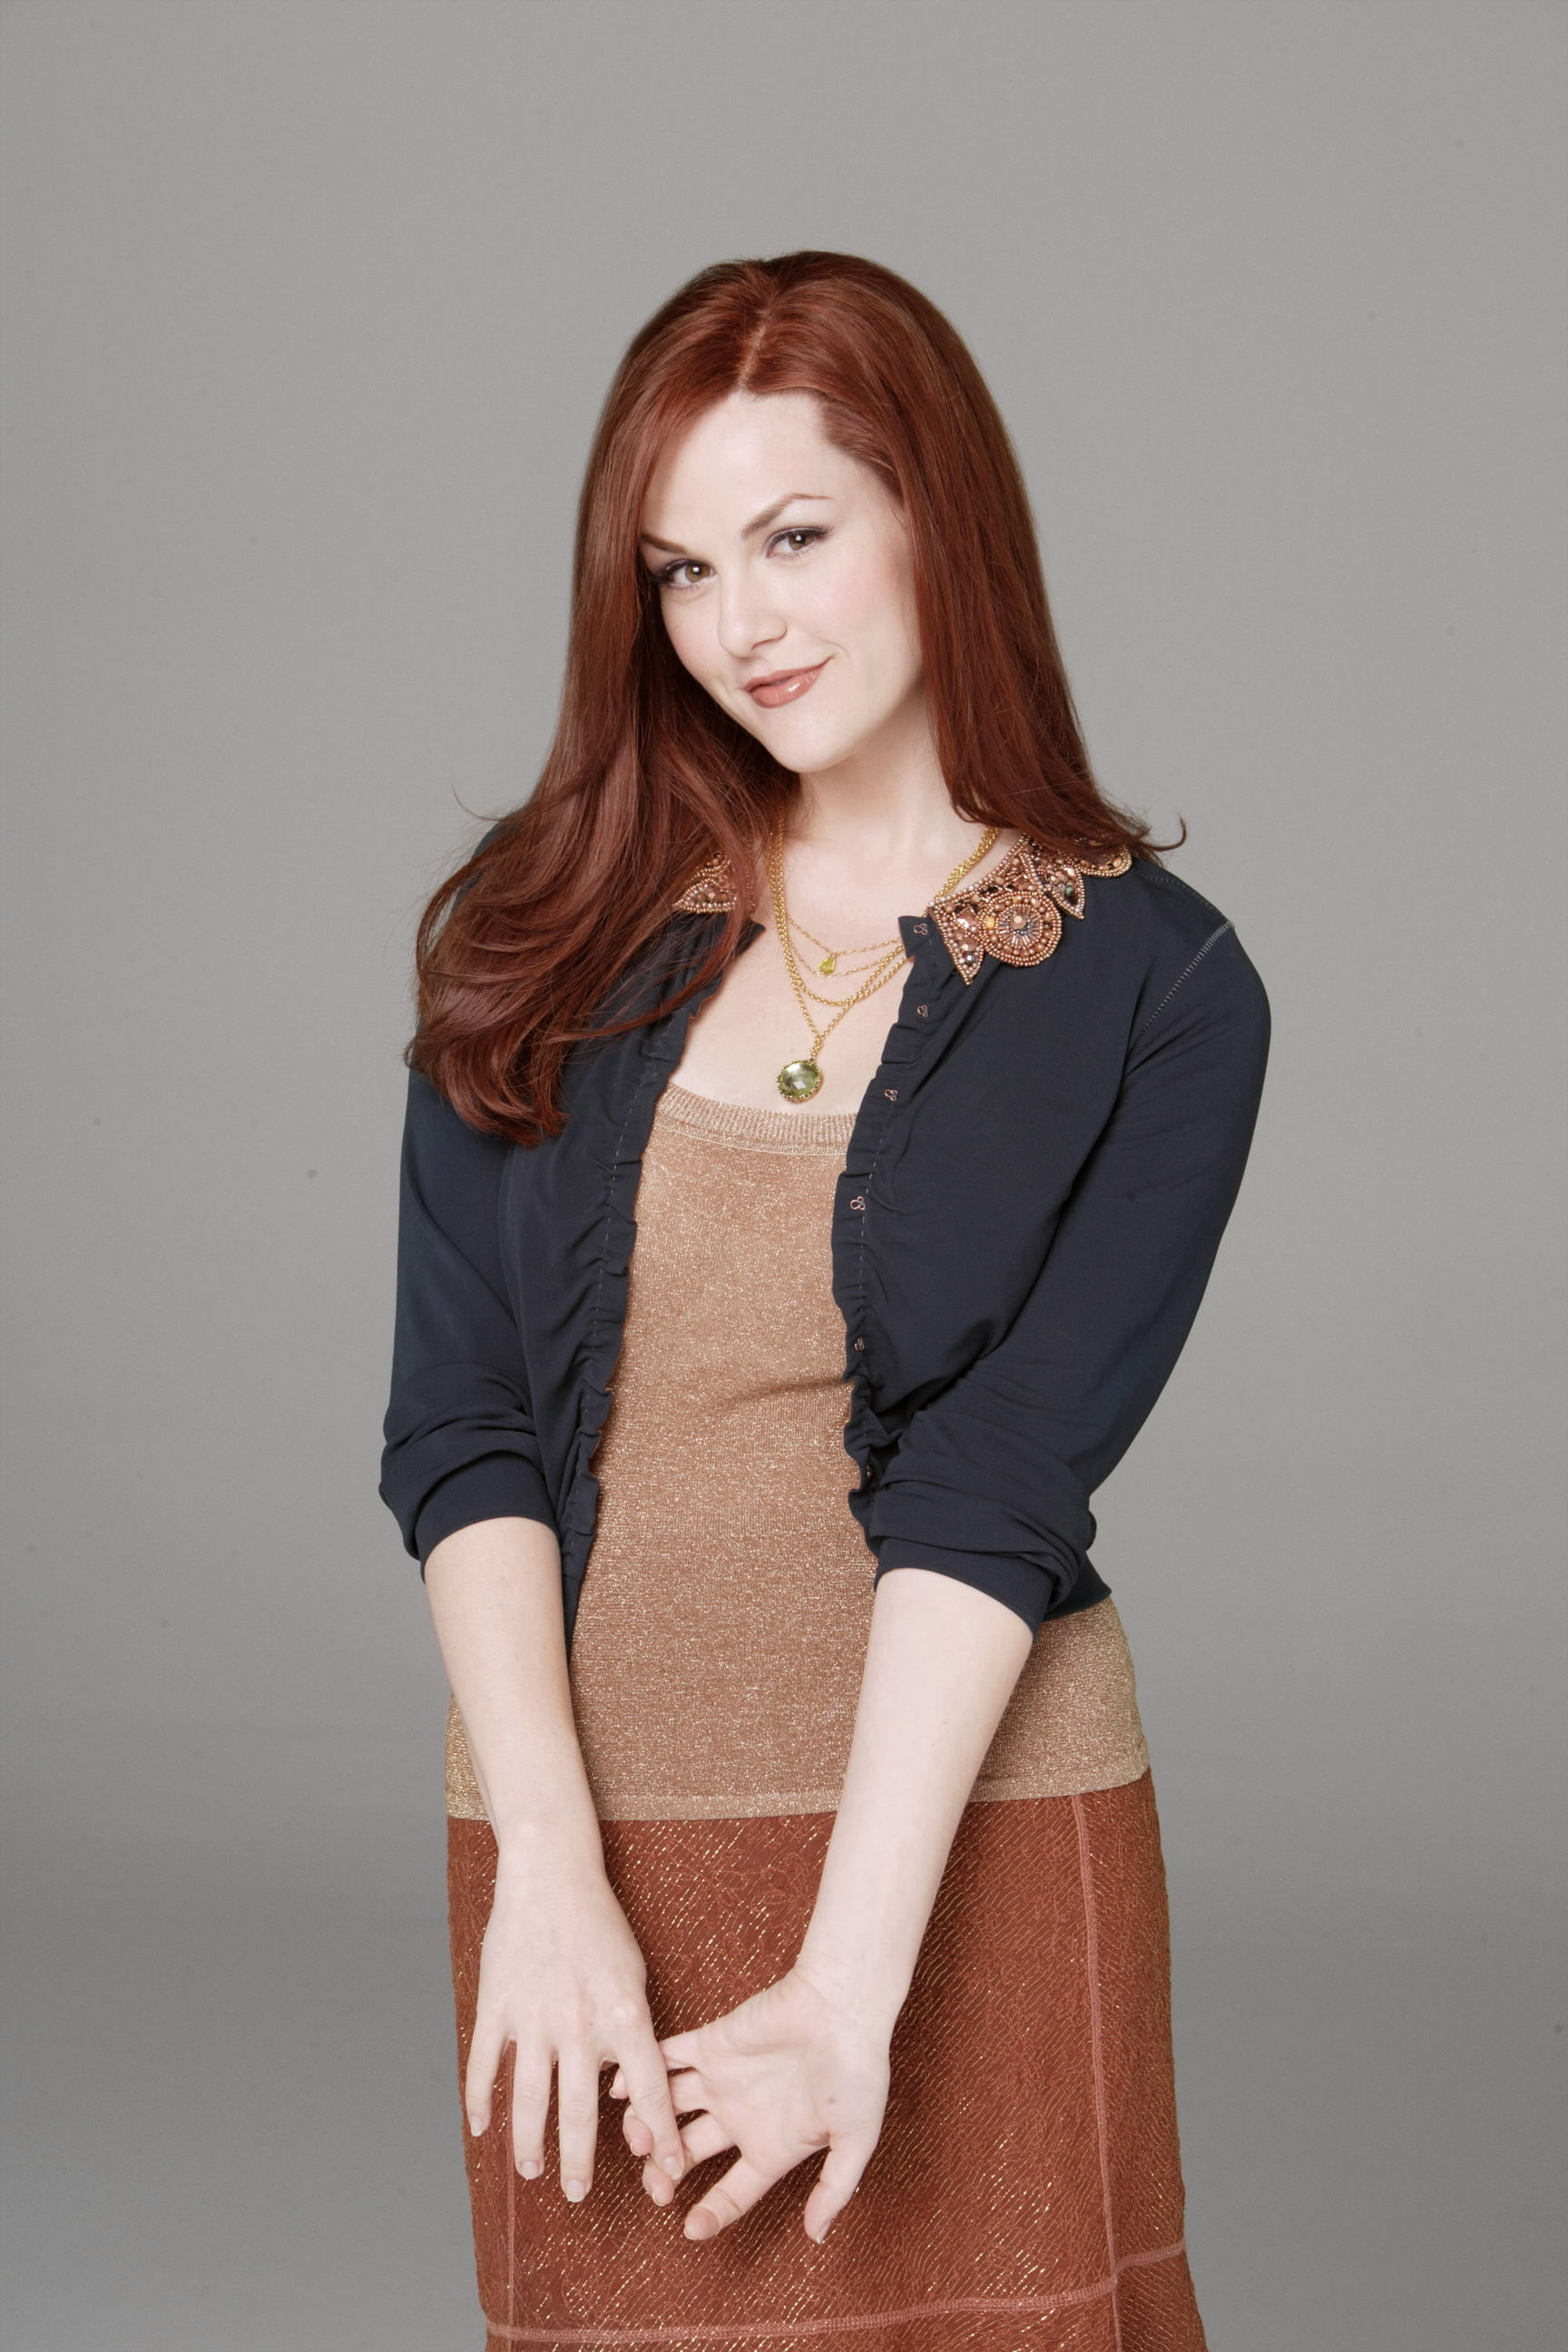 Sara rue rules of engagement 1